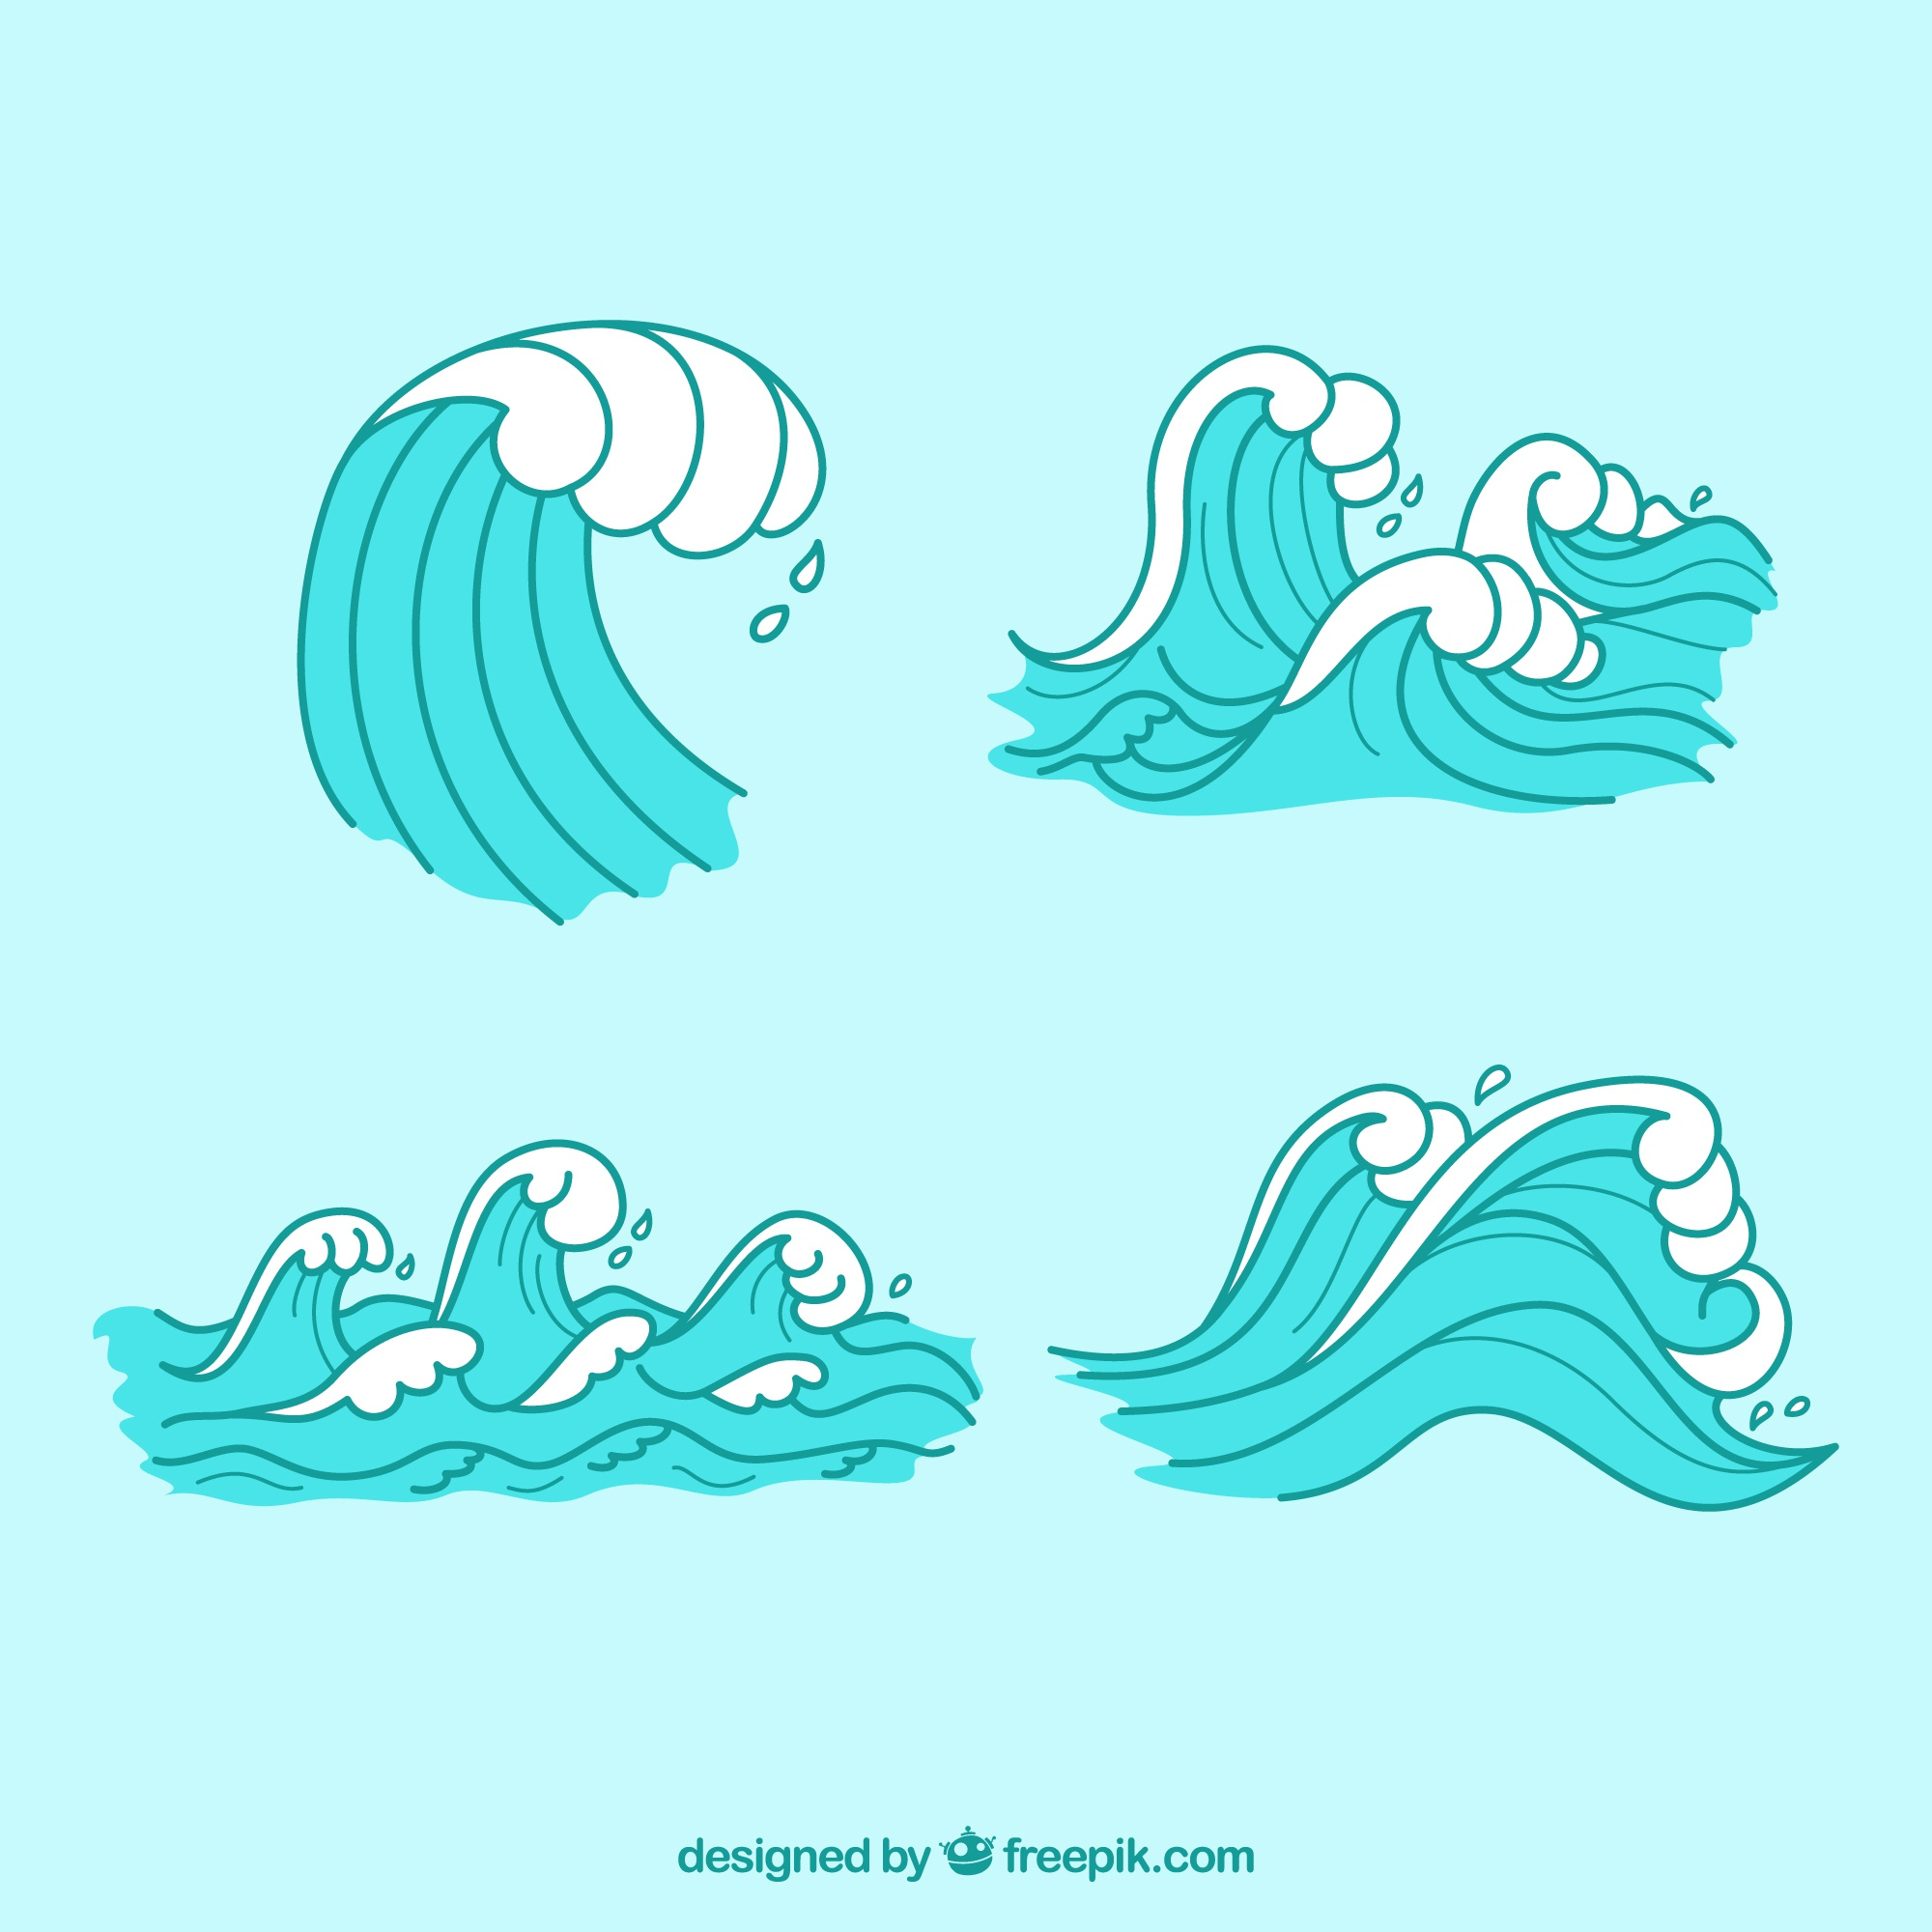 Decorative waves with white details